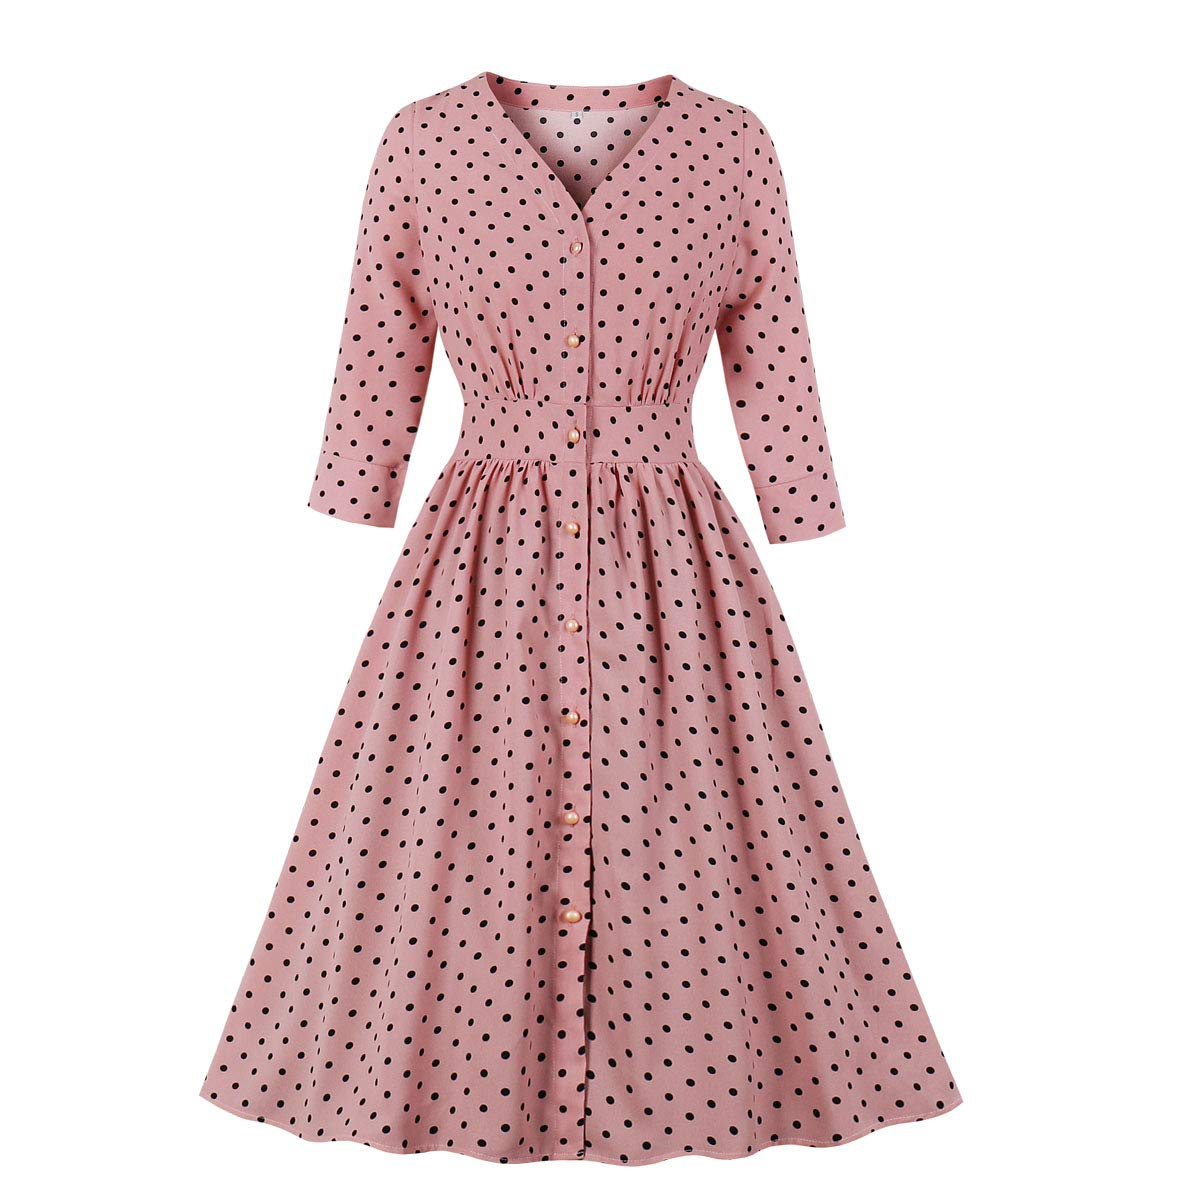 500 Vintage Style Dresses for Sale | Vintage Inspired Dresses Wellwits Womens Split Neck Floral Button 1940s Day 1950s Vintage Tea Dress $26.99 AT vintagedancer.com